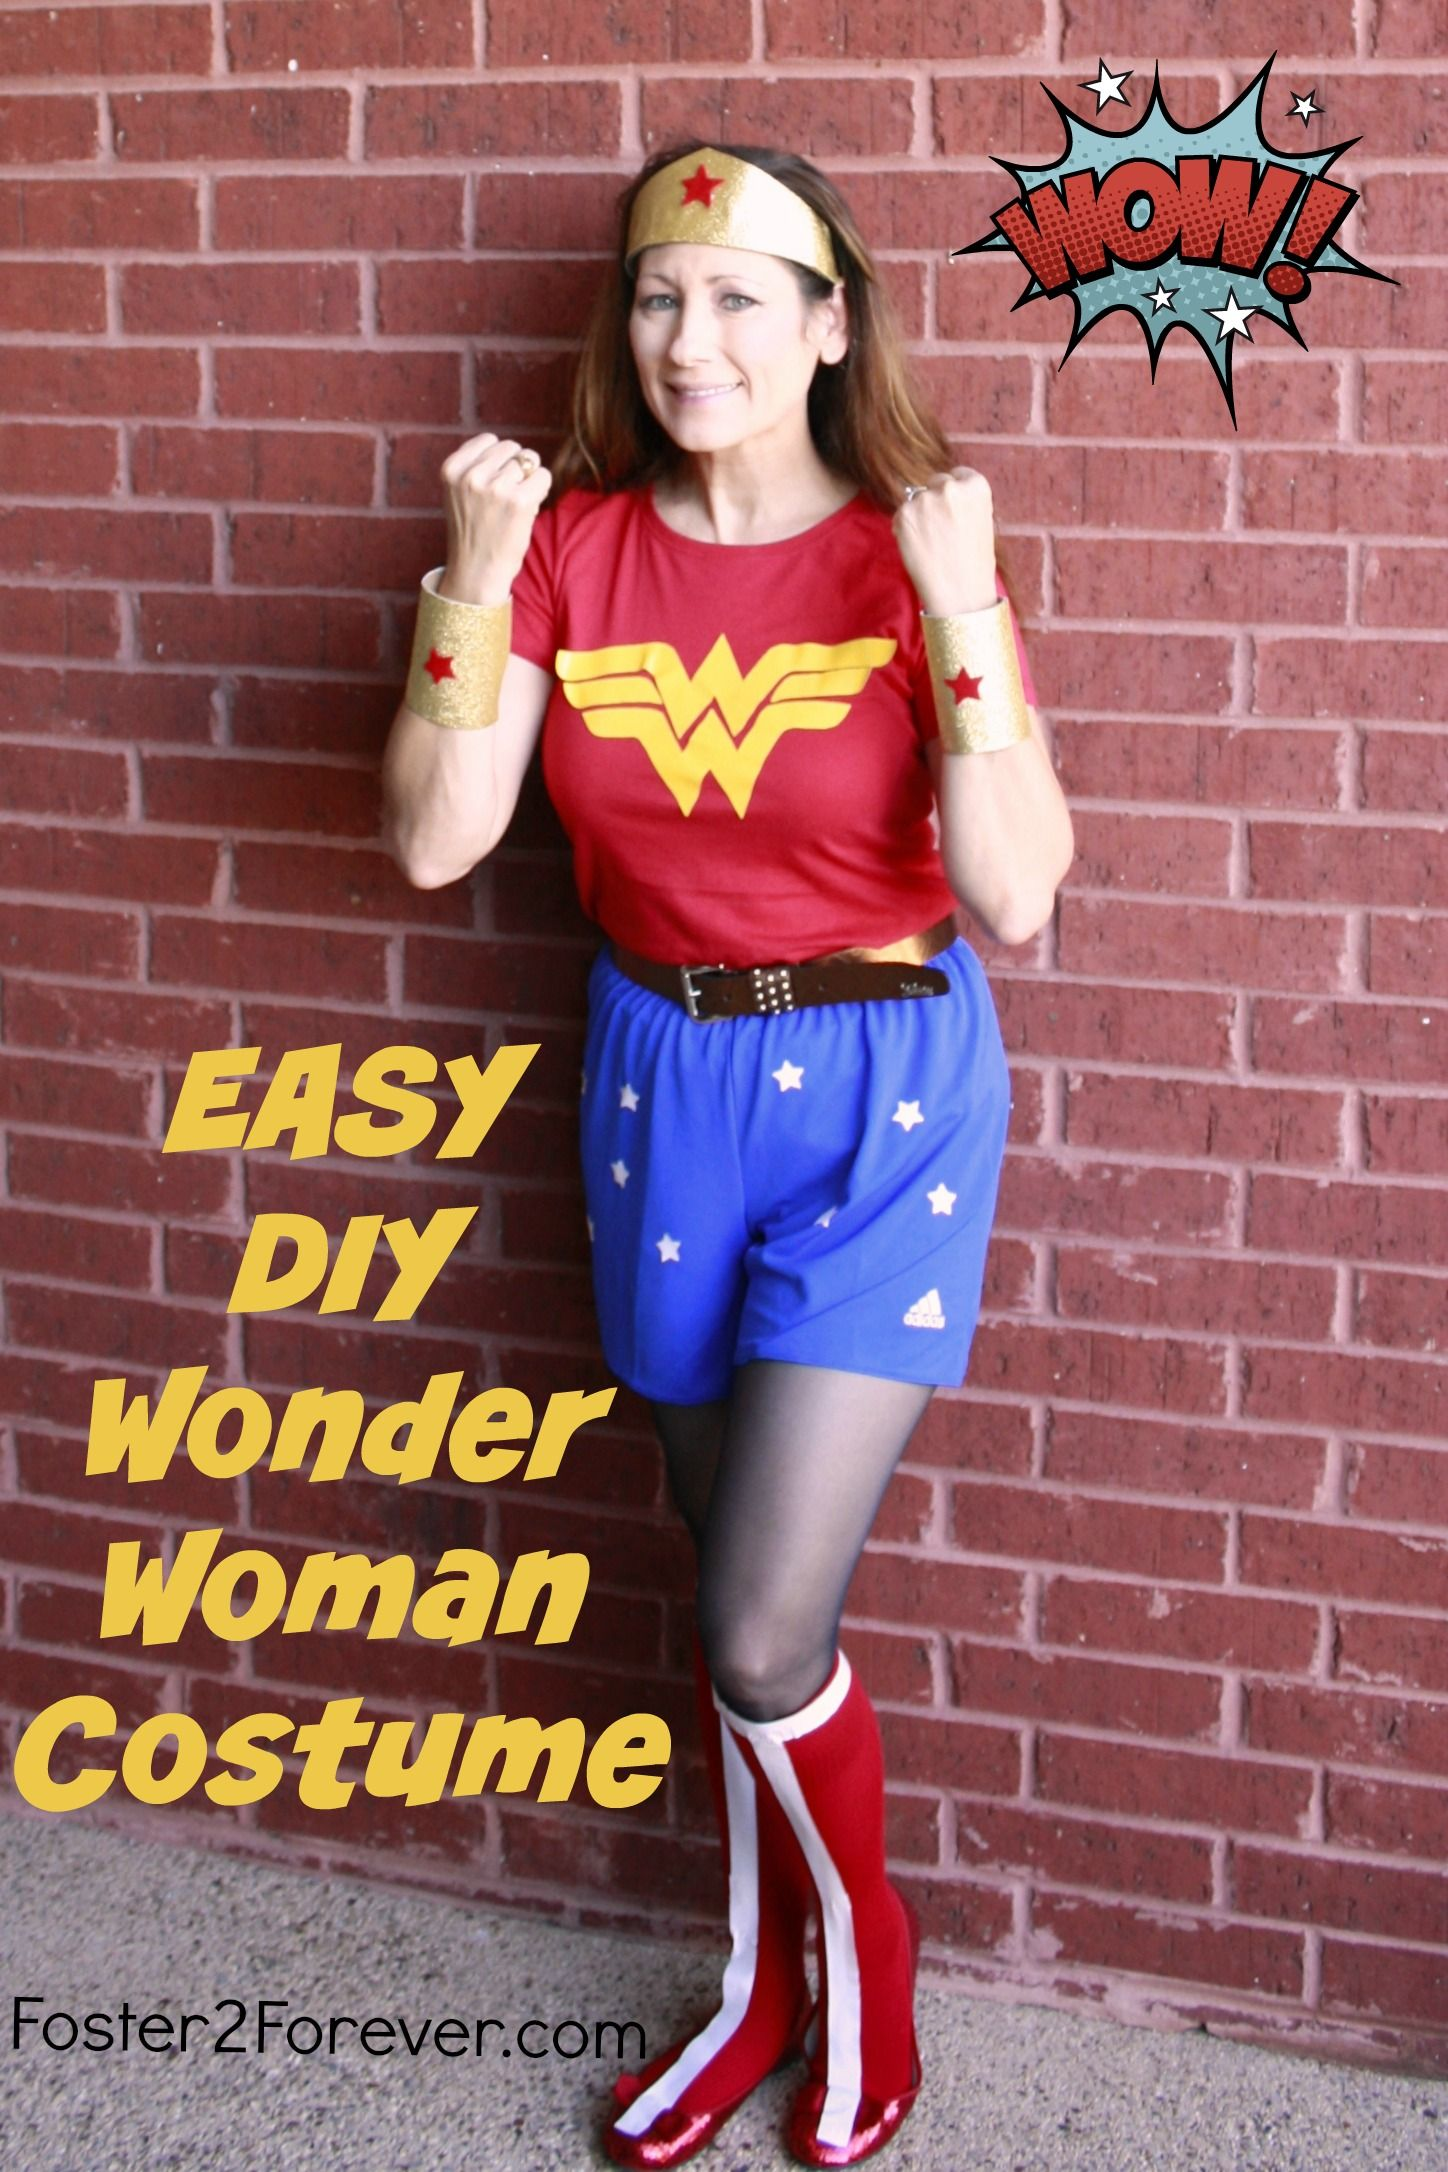 Check out this easy DIY Wonder Woman Costume! Great for Halloween or 5k running. The cuffs are made of toilet paper rolls.  sc 1 st  Pinterest & How to Make a Wonder Woman Costume + 88 Other DIY Costumes   Diy ...